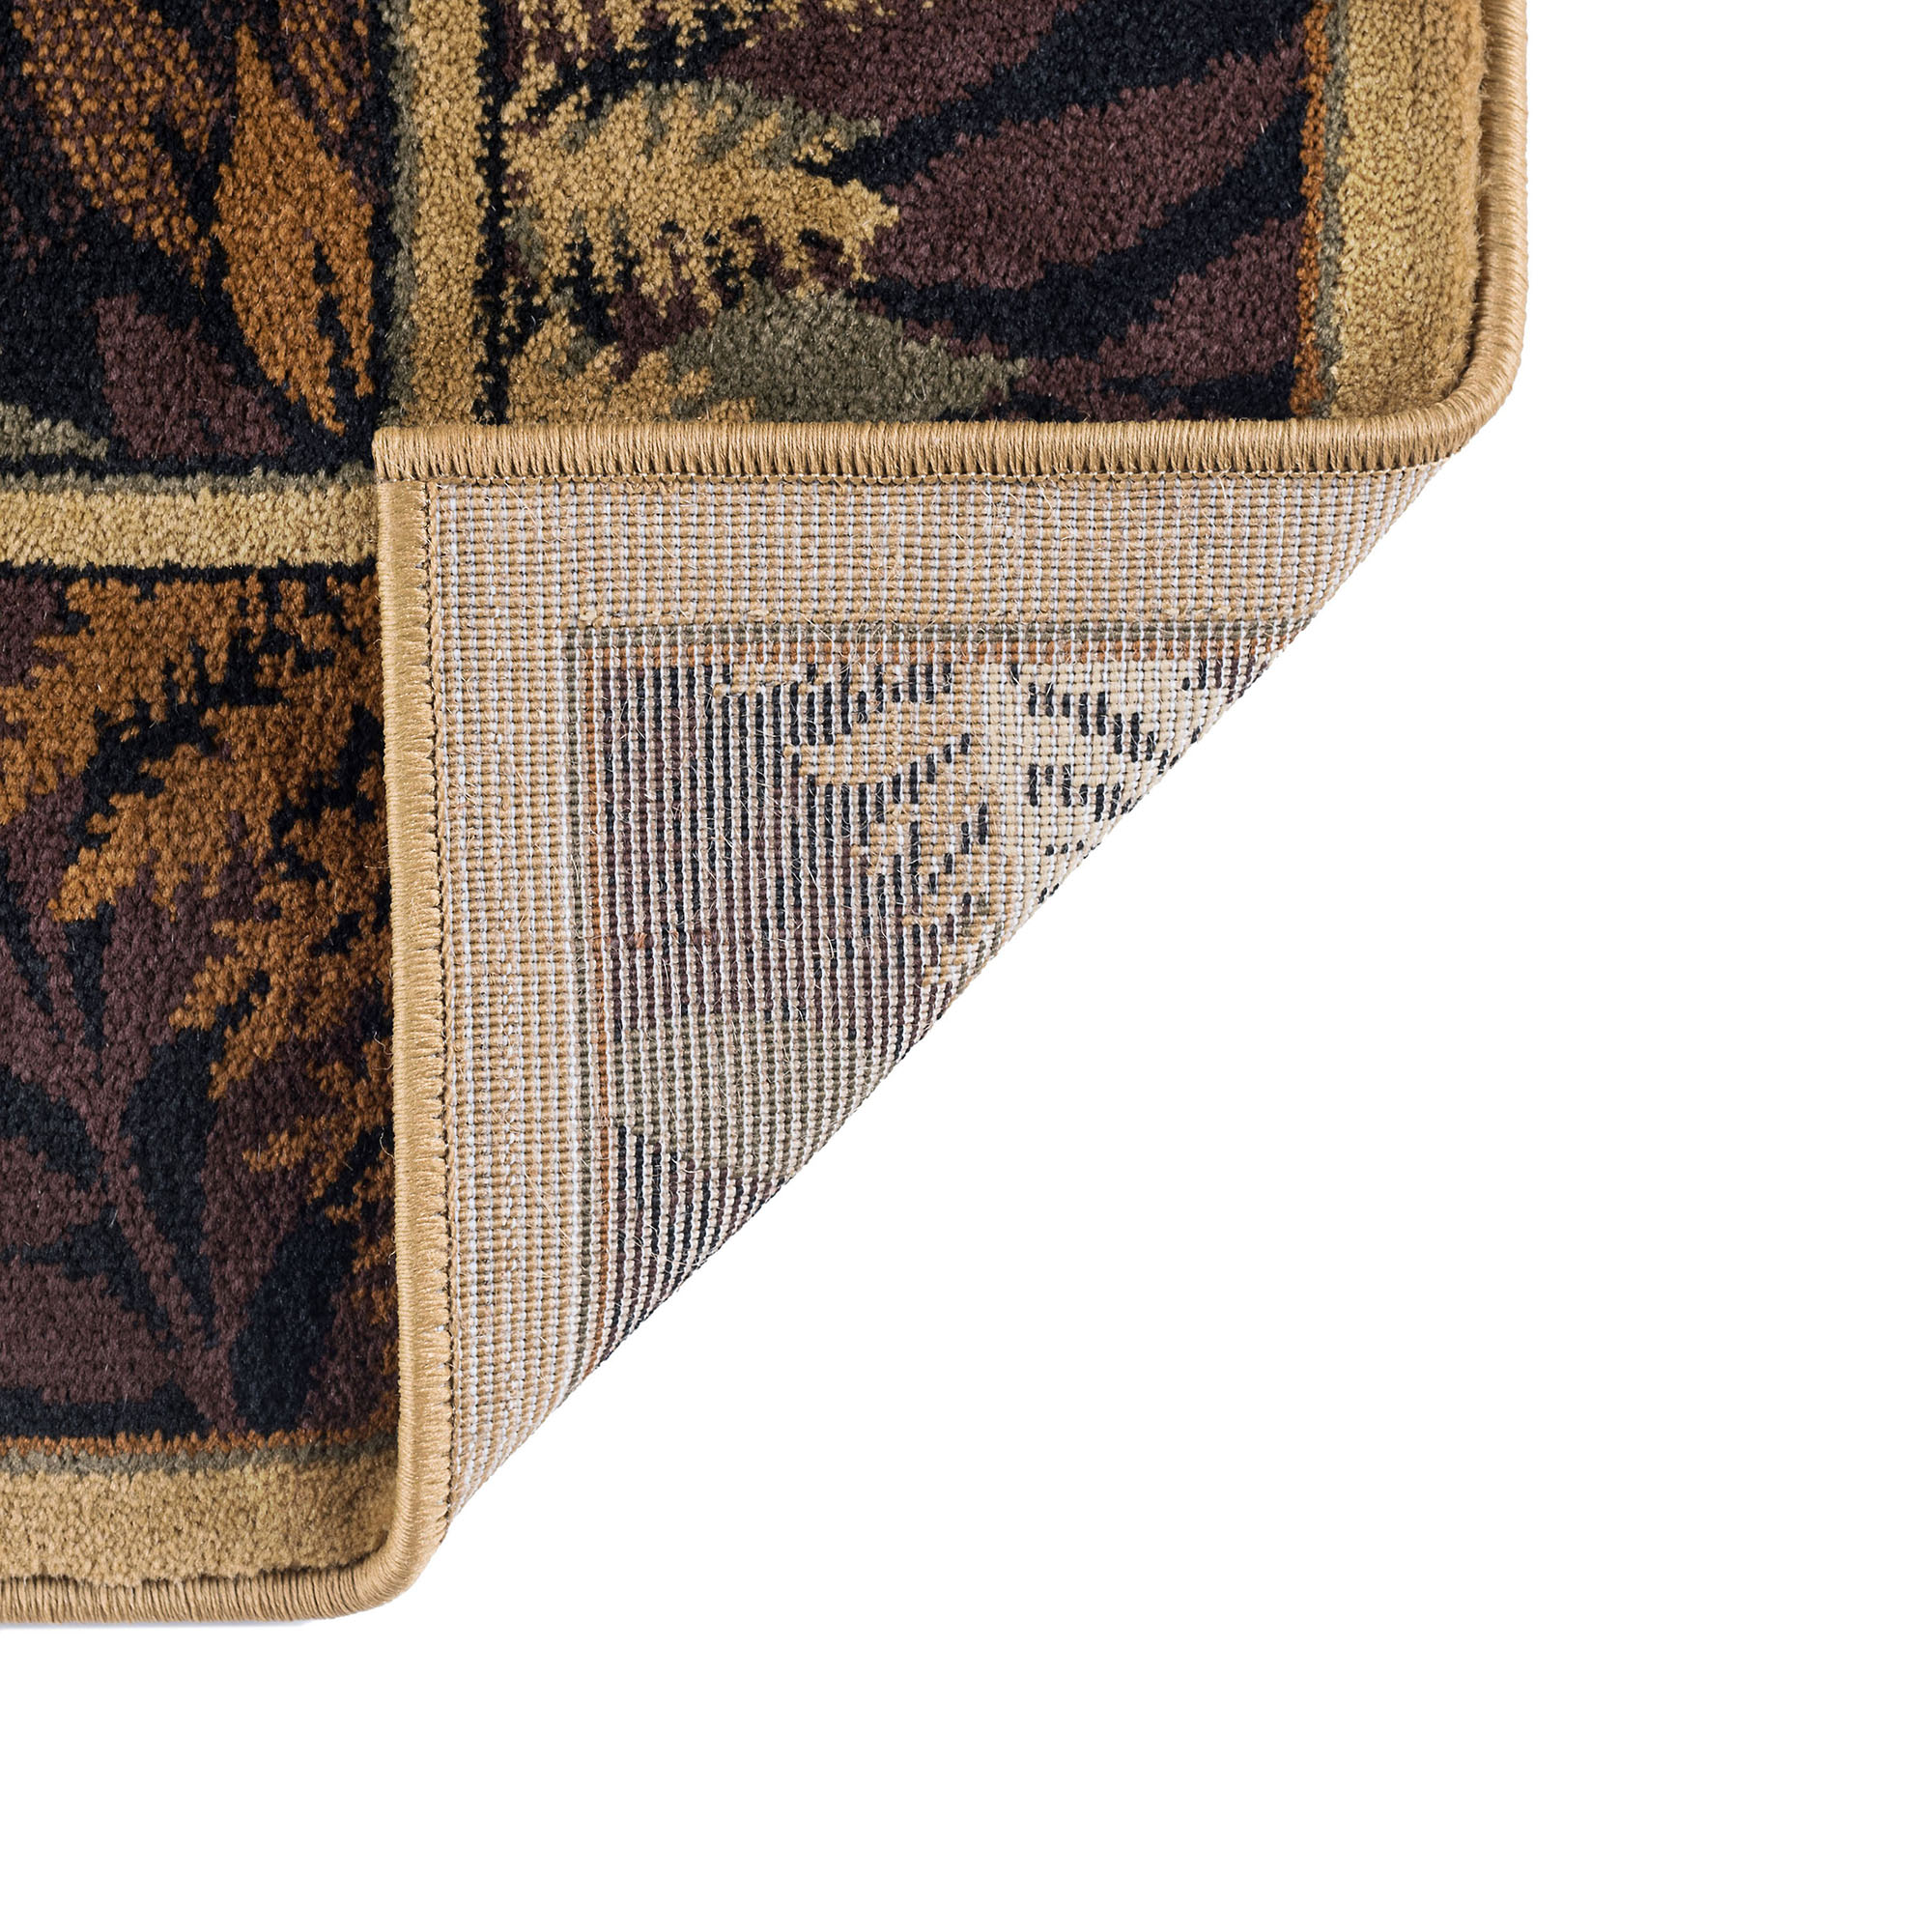 Beige Southwestern Lodge Trees Woods 2x7 Runner Area Rug